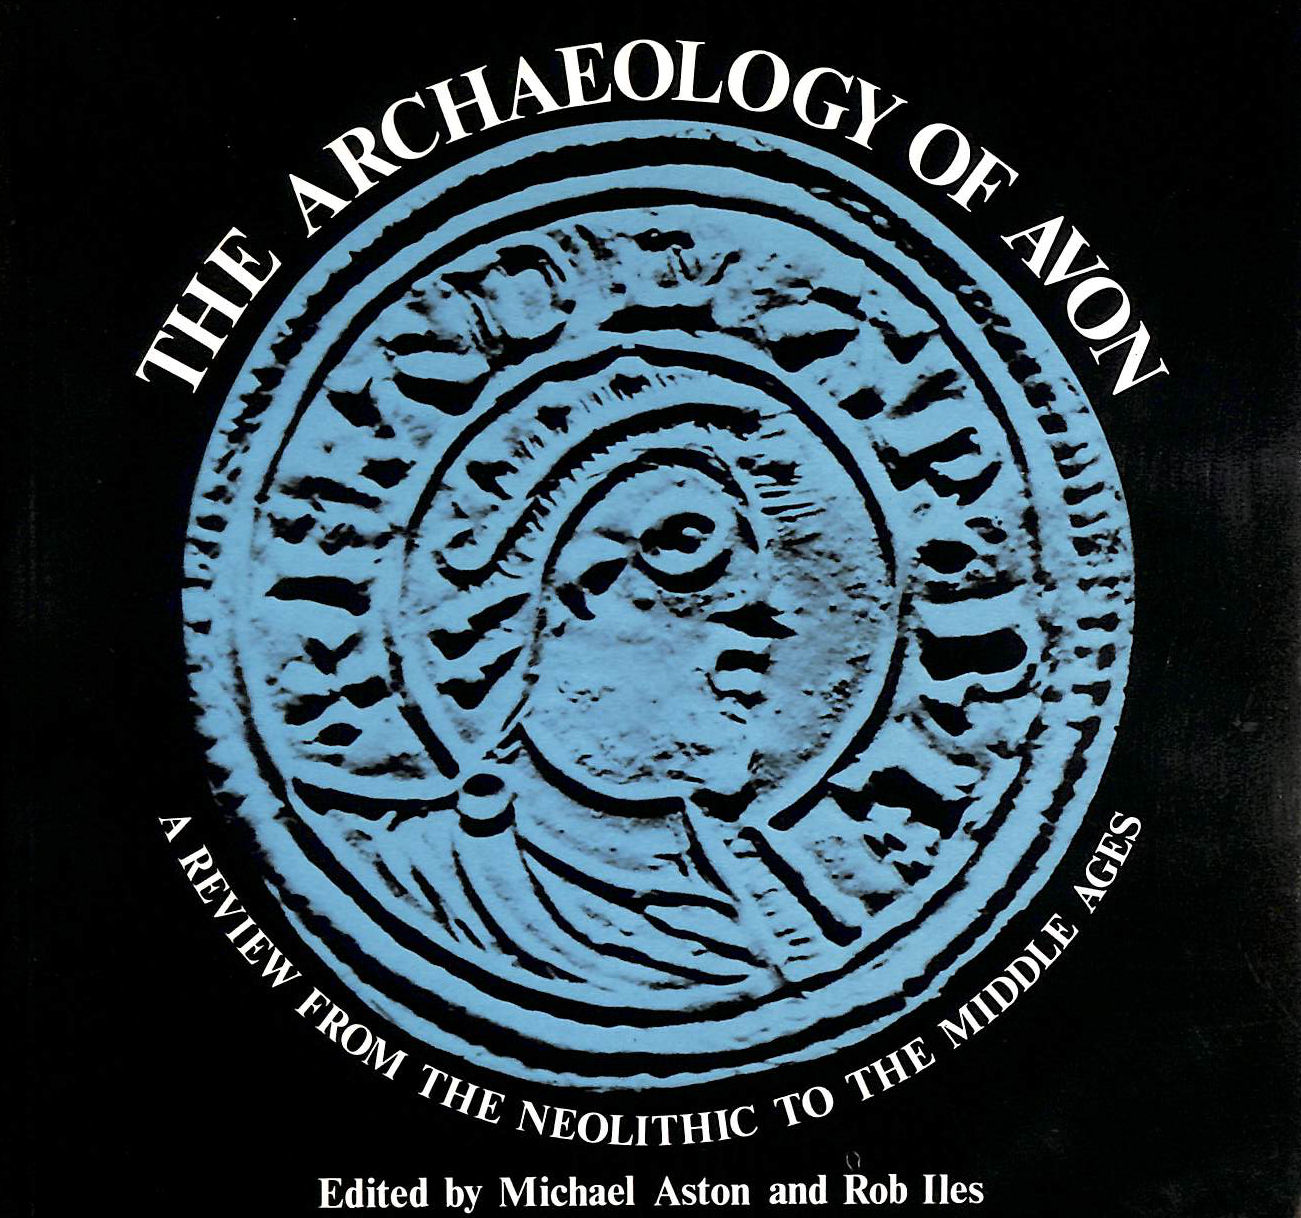 Image for Archaeology of Avon: A Review from the Neolithic to the Middle Ages